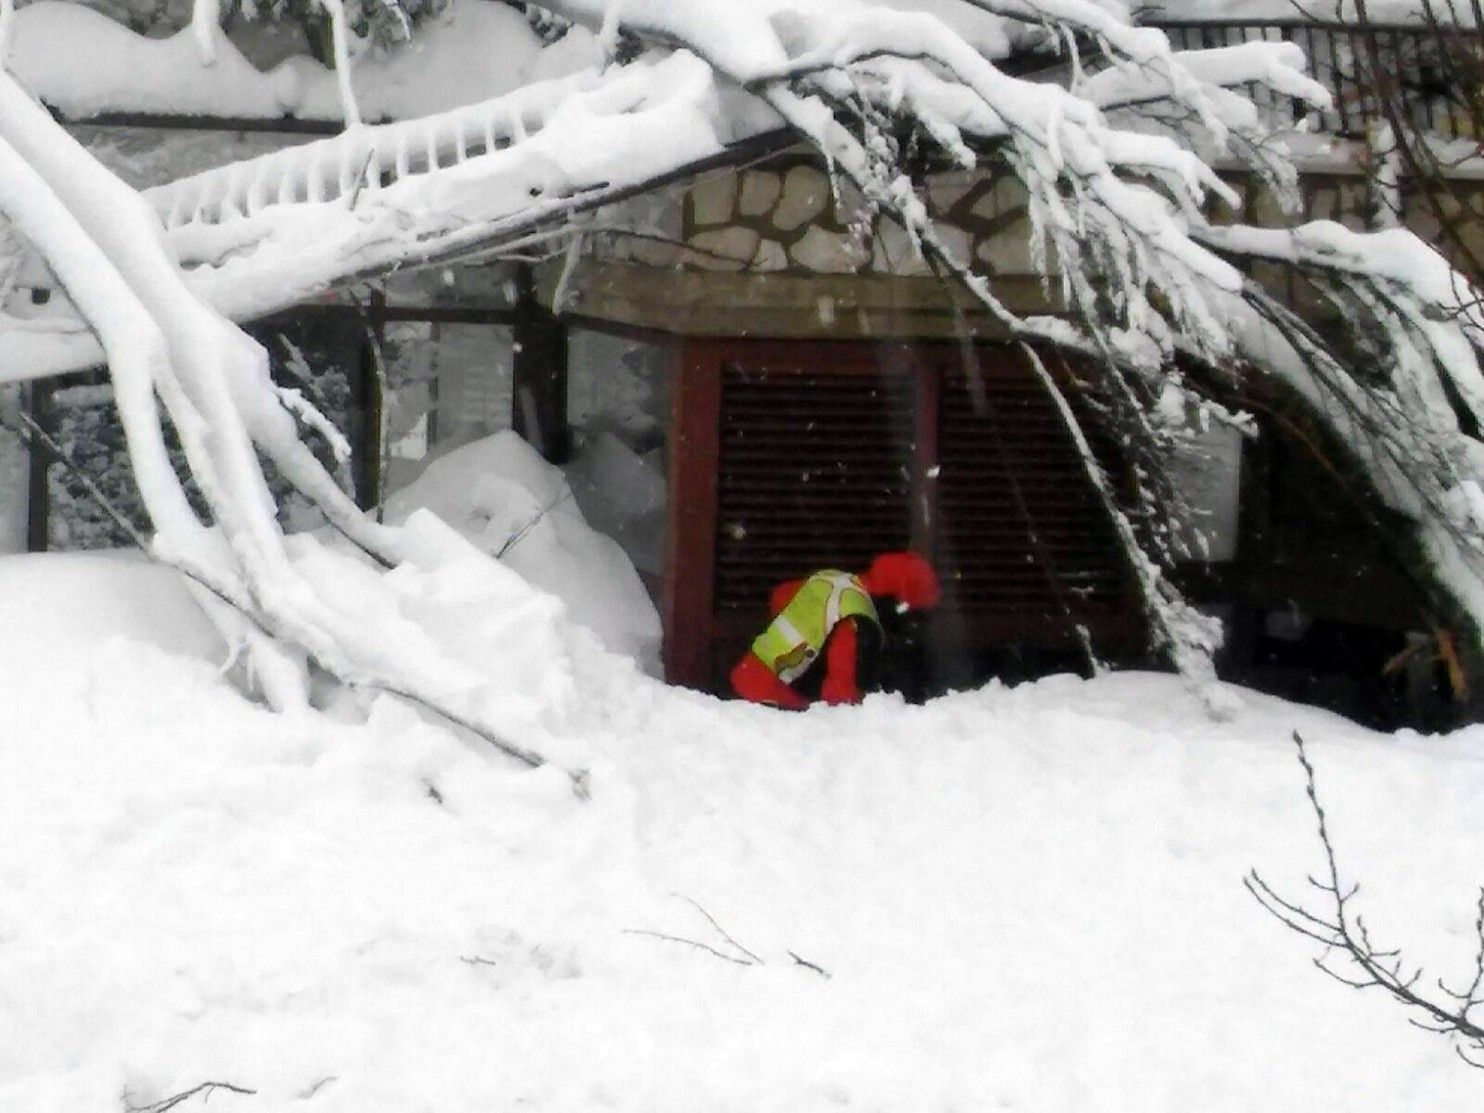 Rigopiano hotel avalanche first funerals as search goes on bbc news - From Italian Hotel Buried By Avalanche Desperate Cries For Help Then Silence D World And Hotels